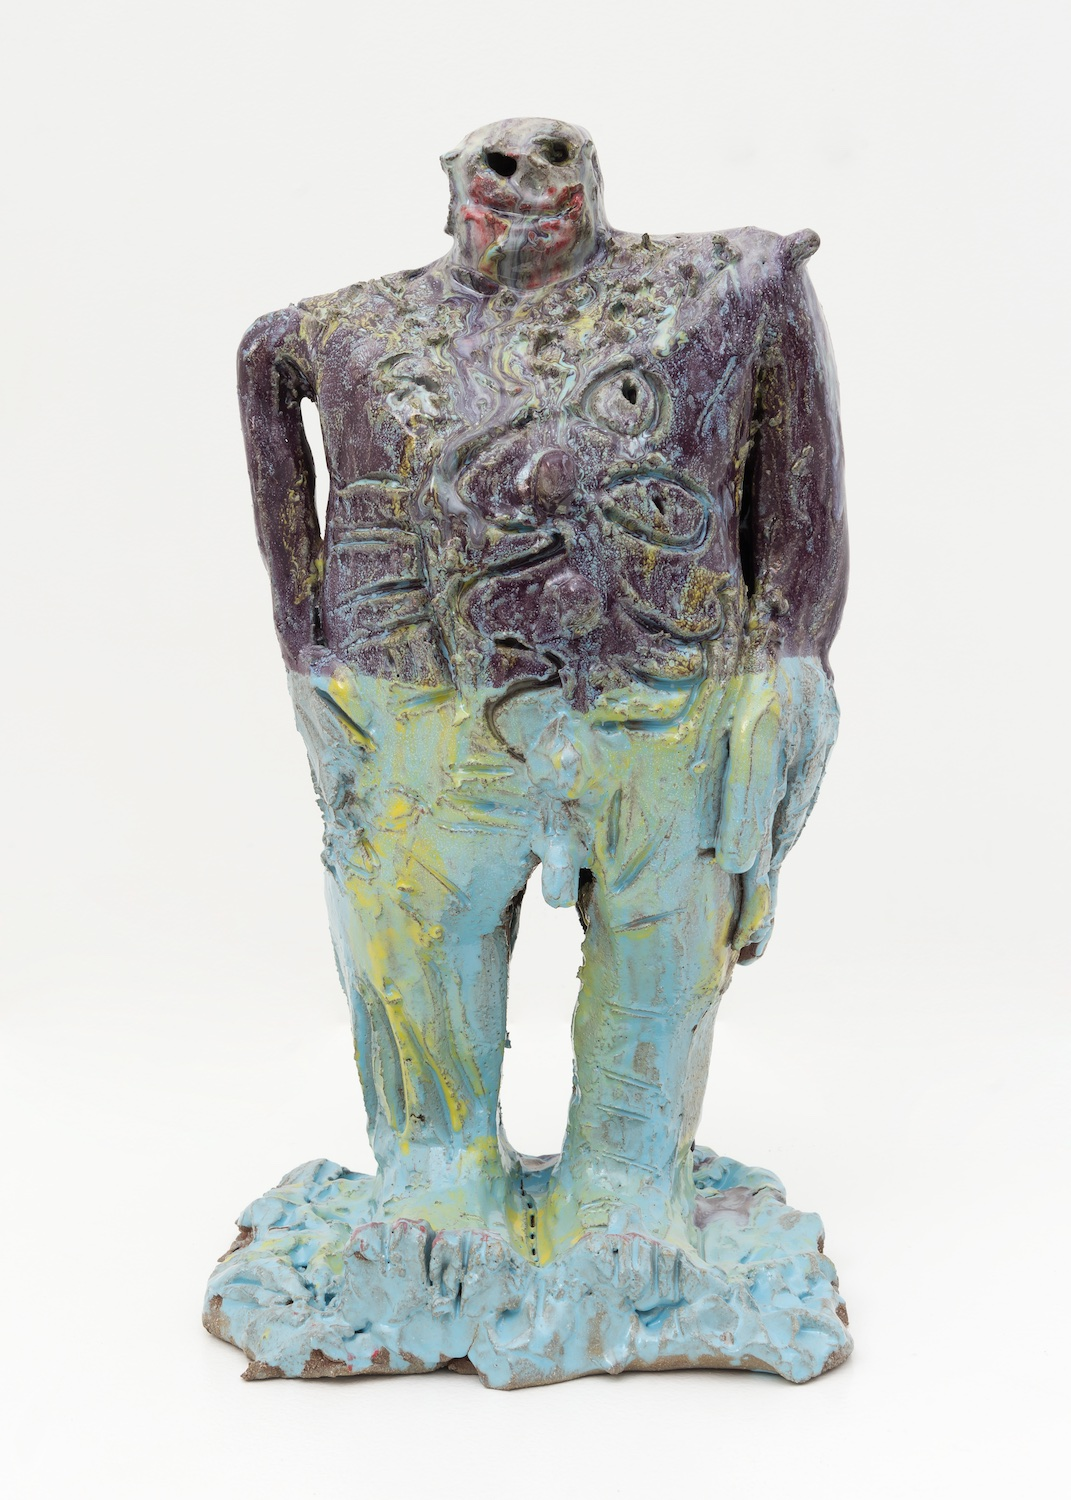 William J. O'Brien  Untitled  2015 Glazed ceramic 20 ¾h x 10w x 10 ½d in WOB997